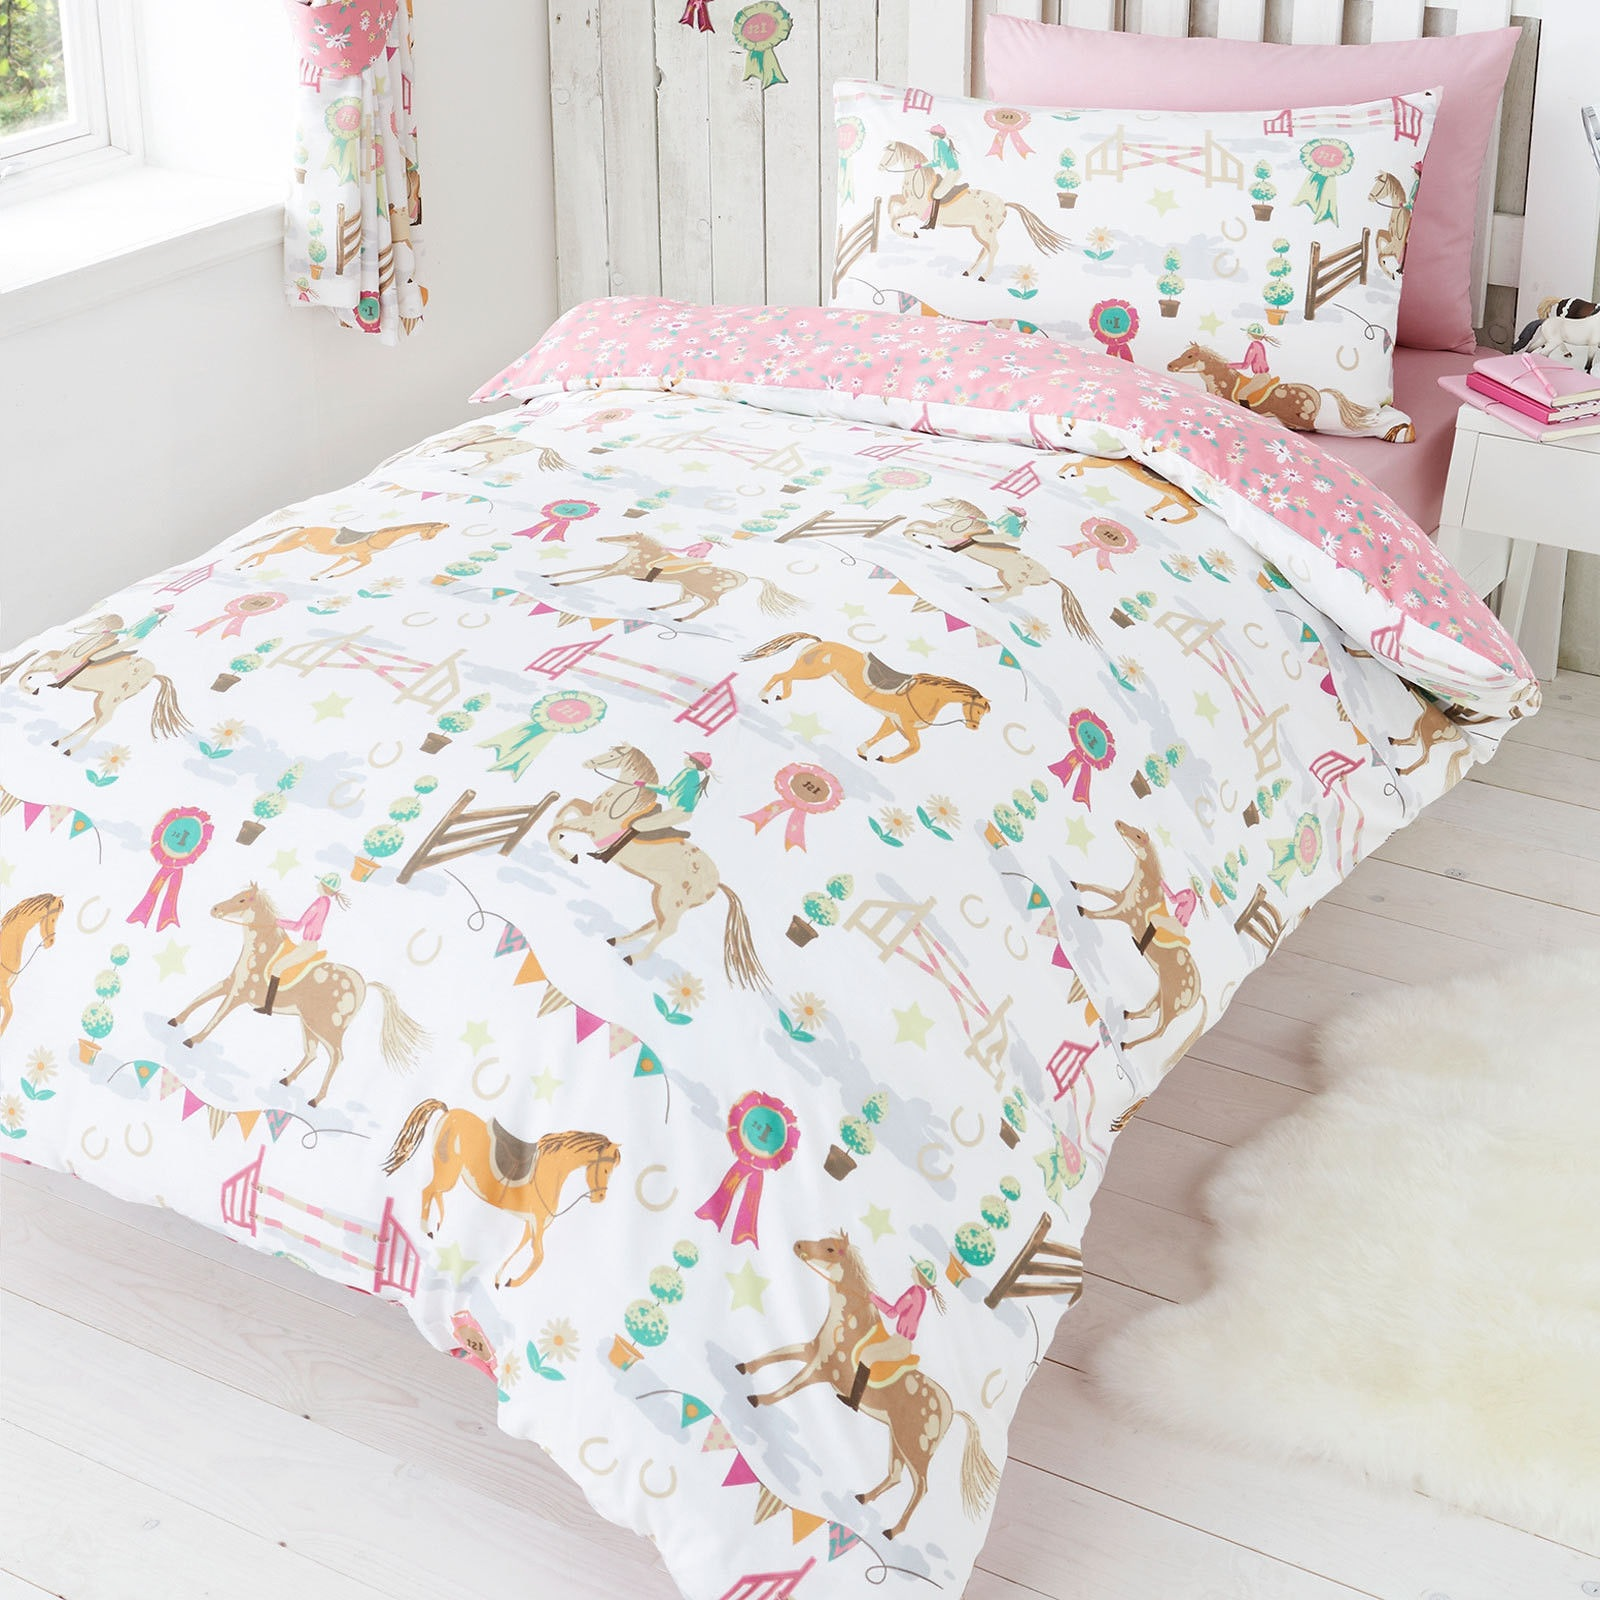 Horse Sheets Bedding